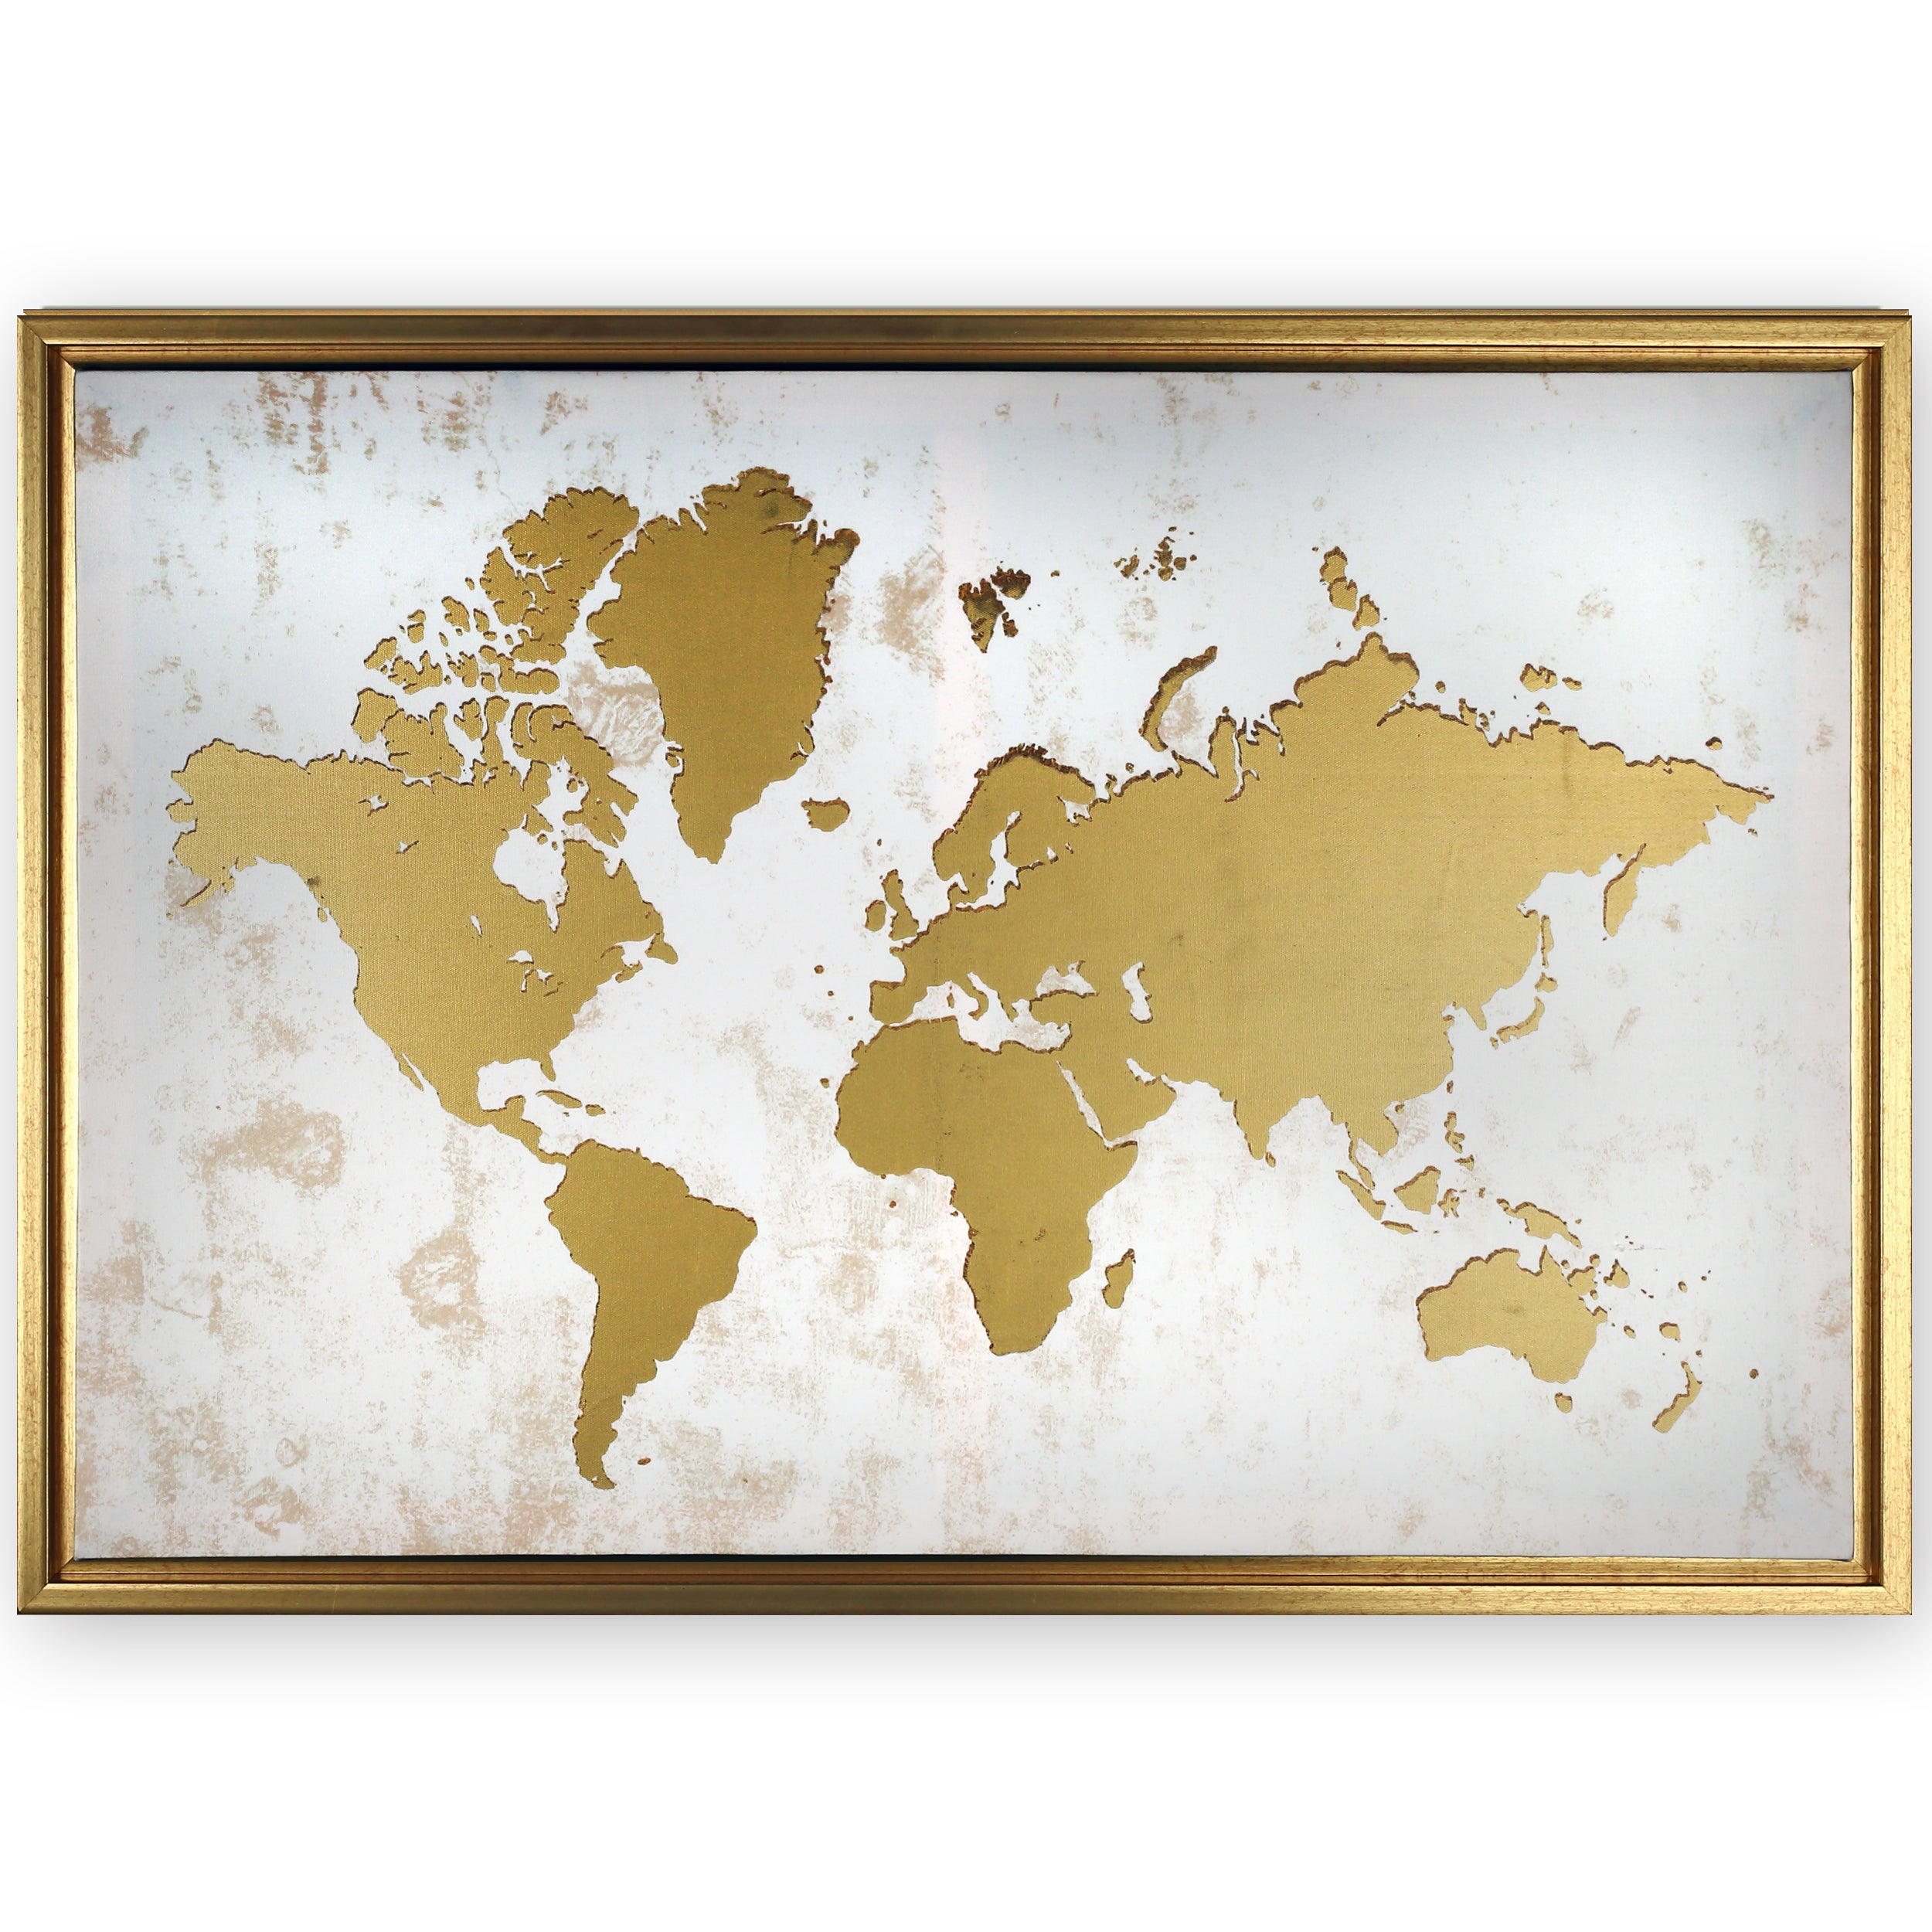 Shop framed white and gold world map on sale free shipping today shop framed white and gold world map on sale free shipping today overstock 16796013 gumiabroncs Gallery